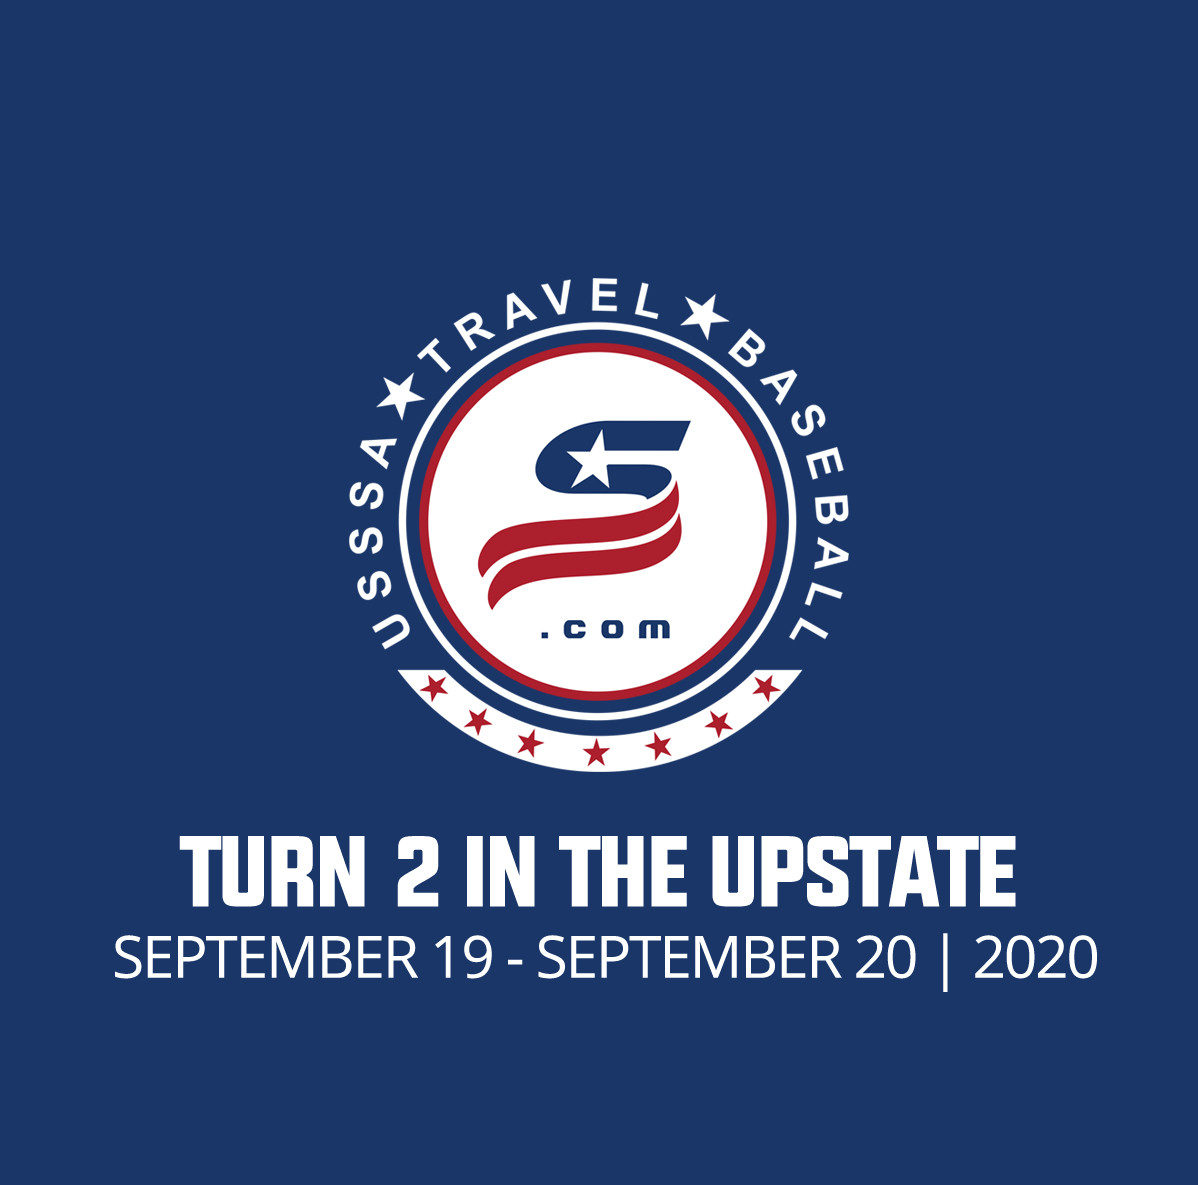 UPSTATE - TURN 2